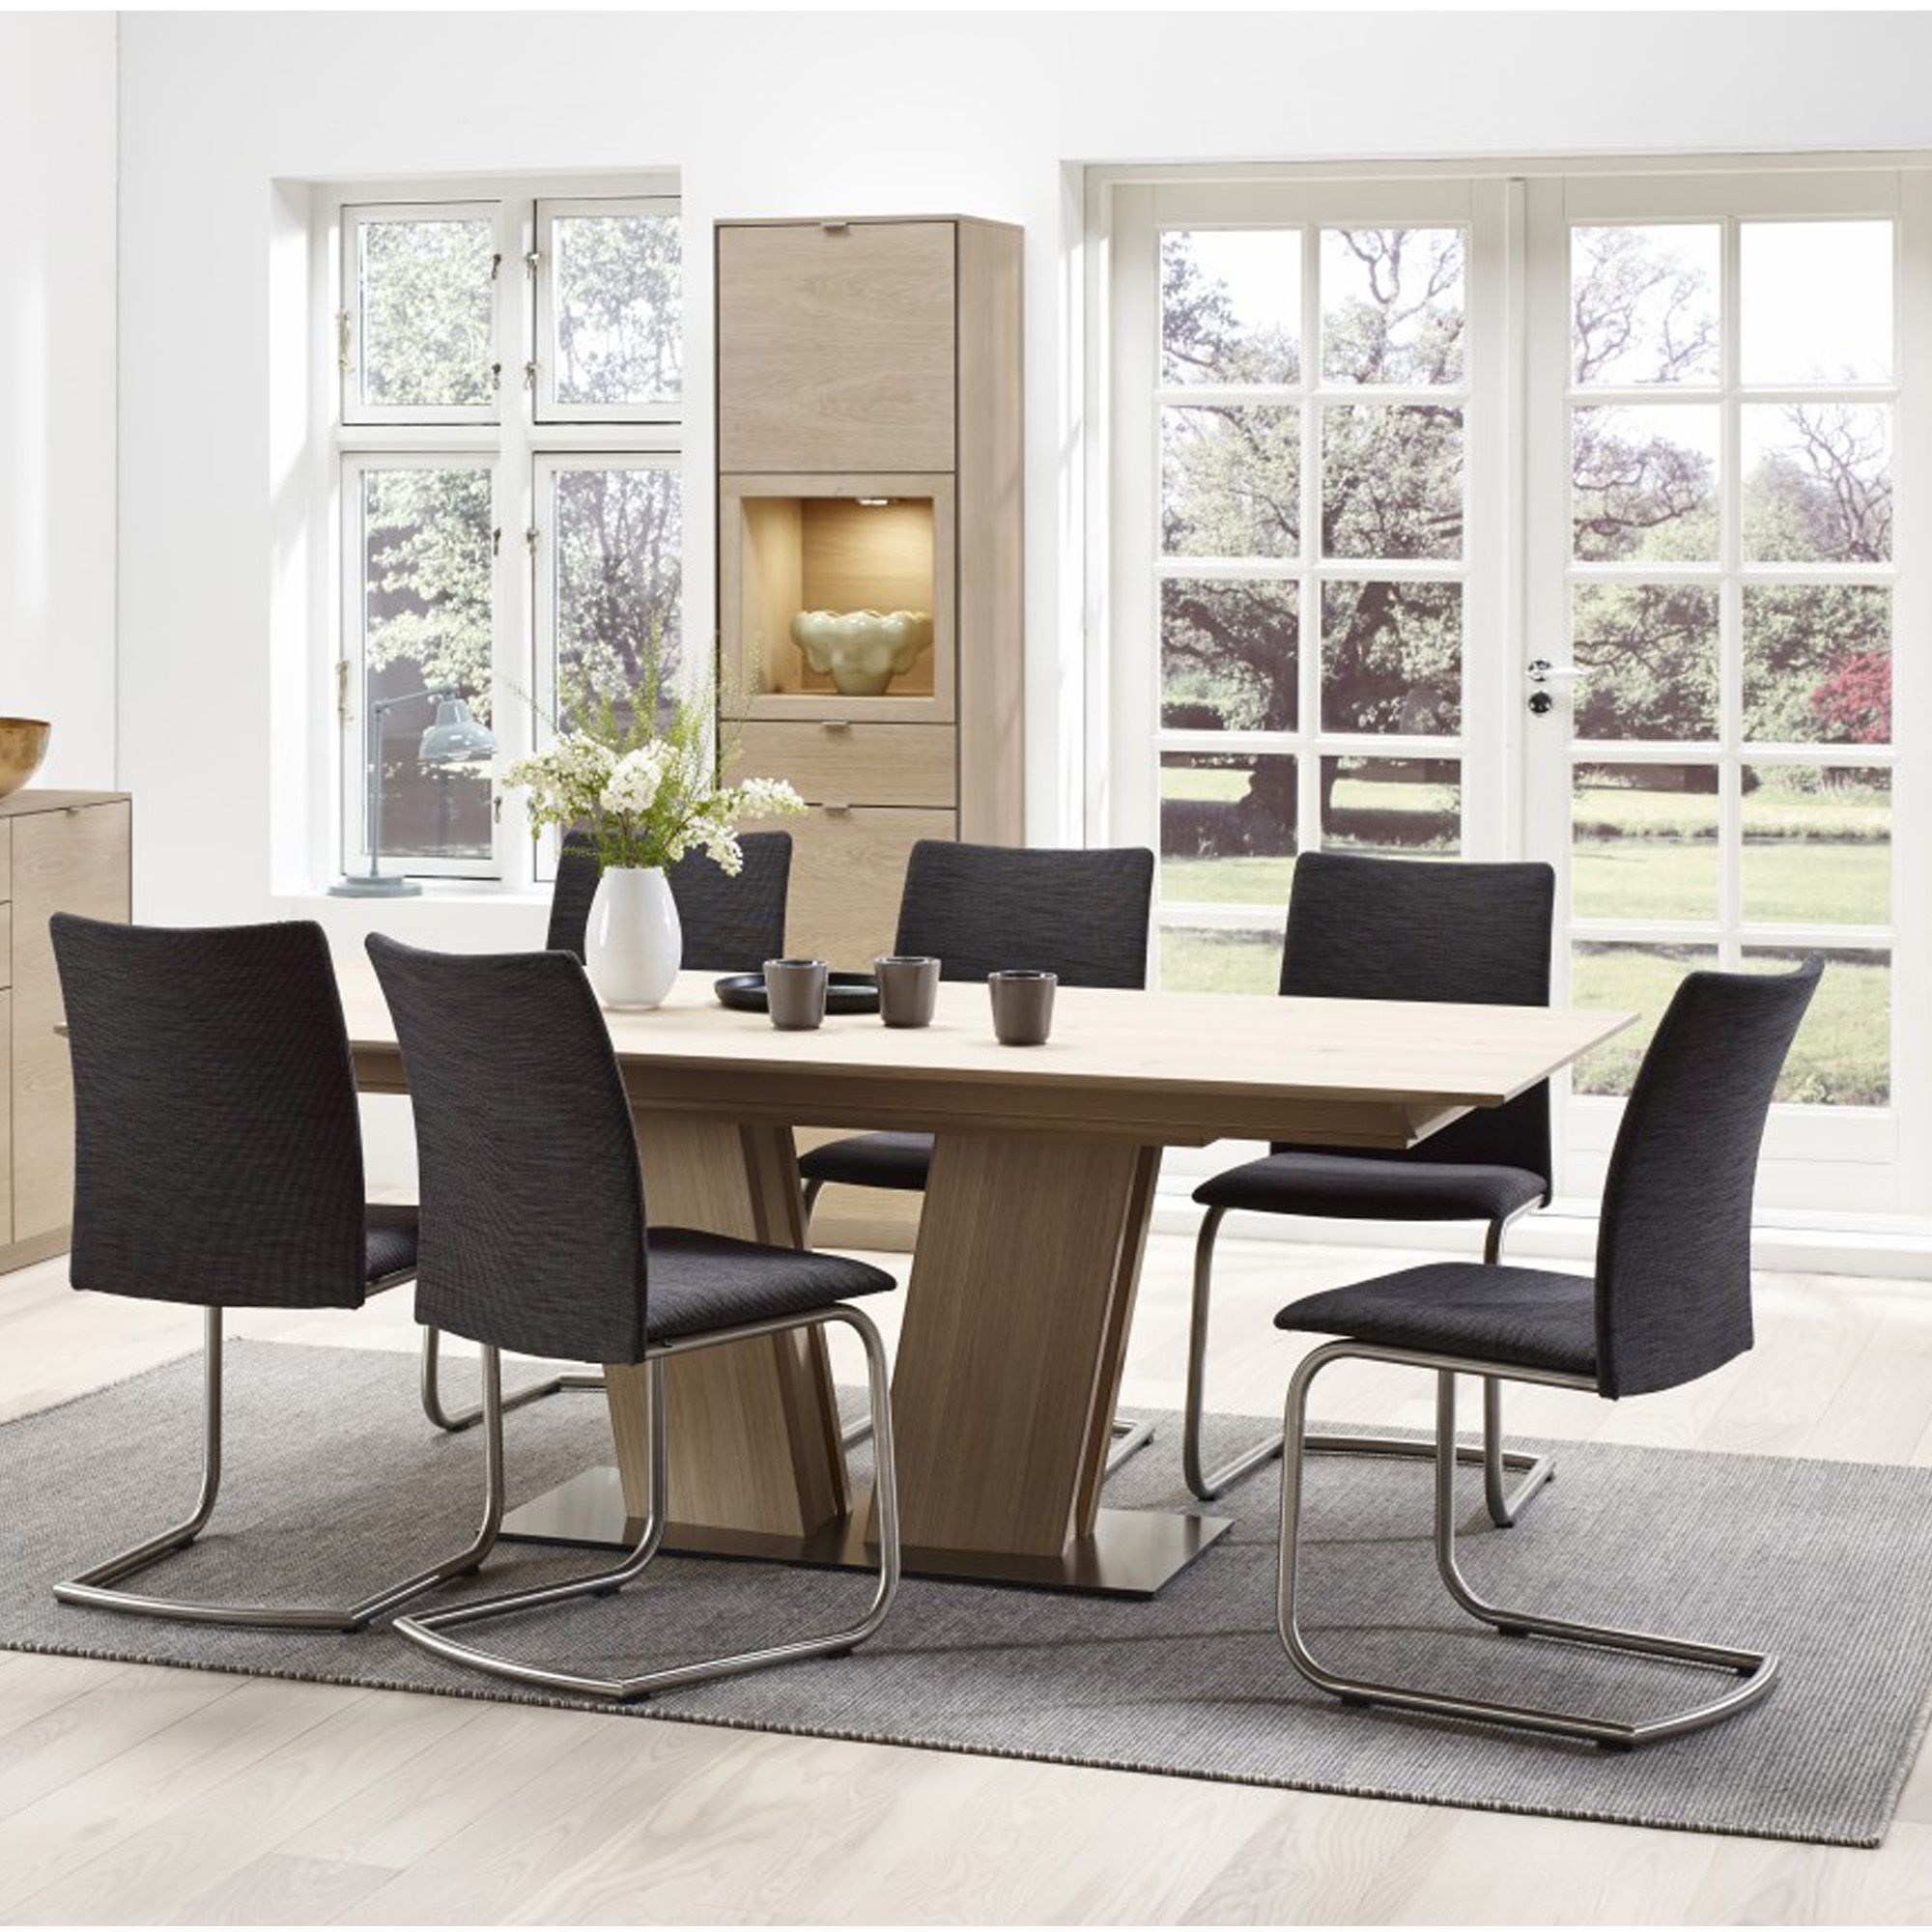 Skovby Walnut Dining Table And 6 Chairs From 2449 My Future Home